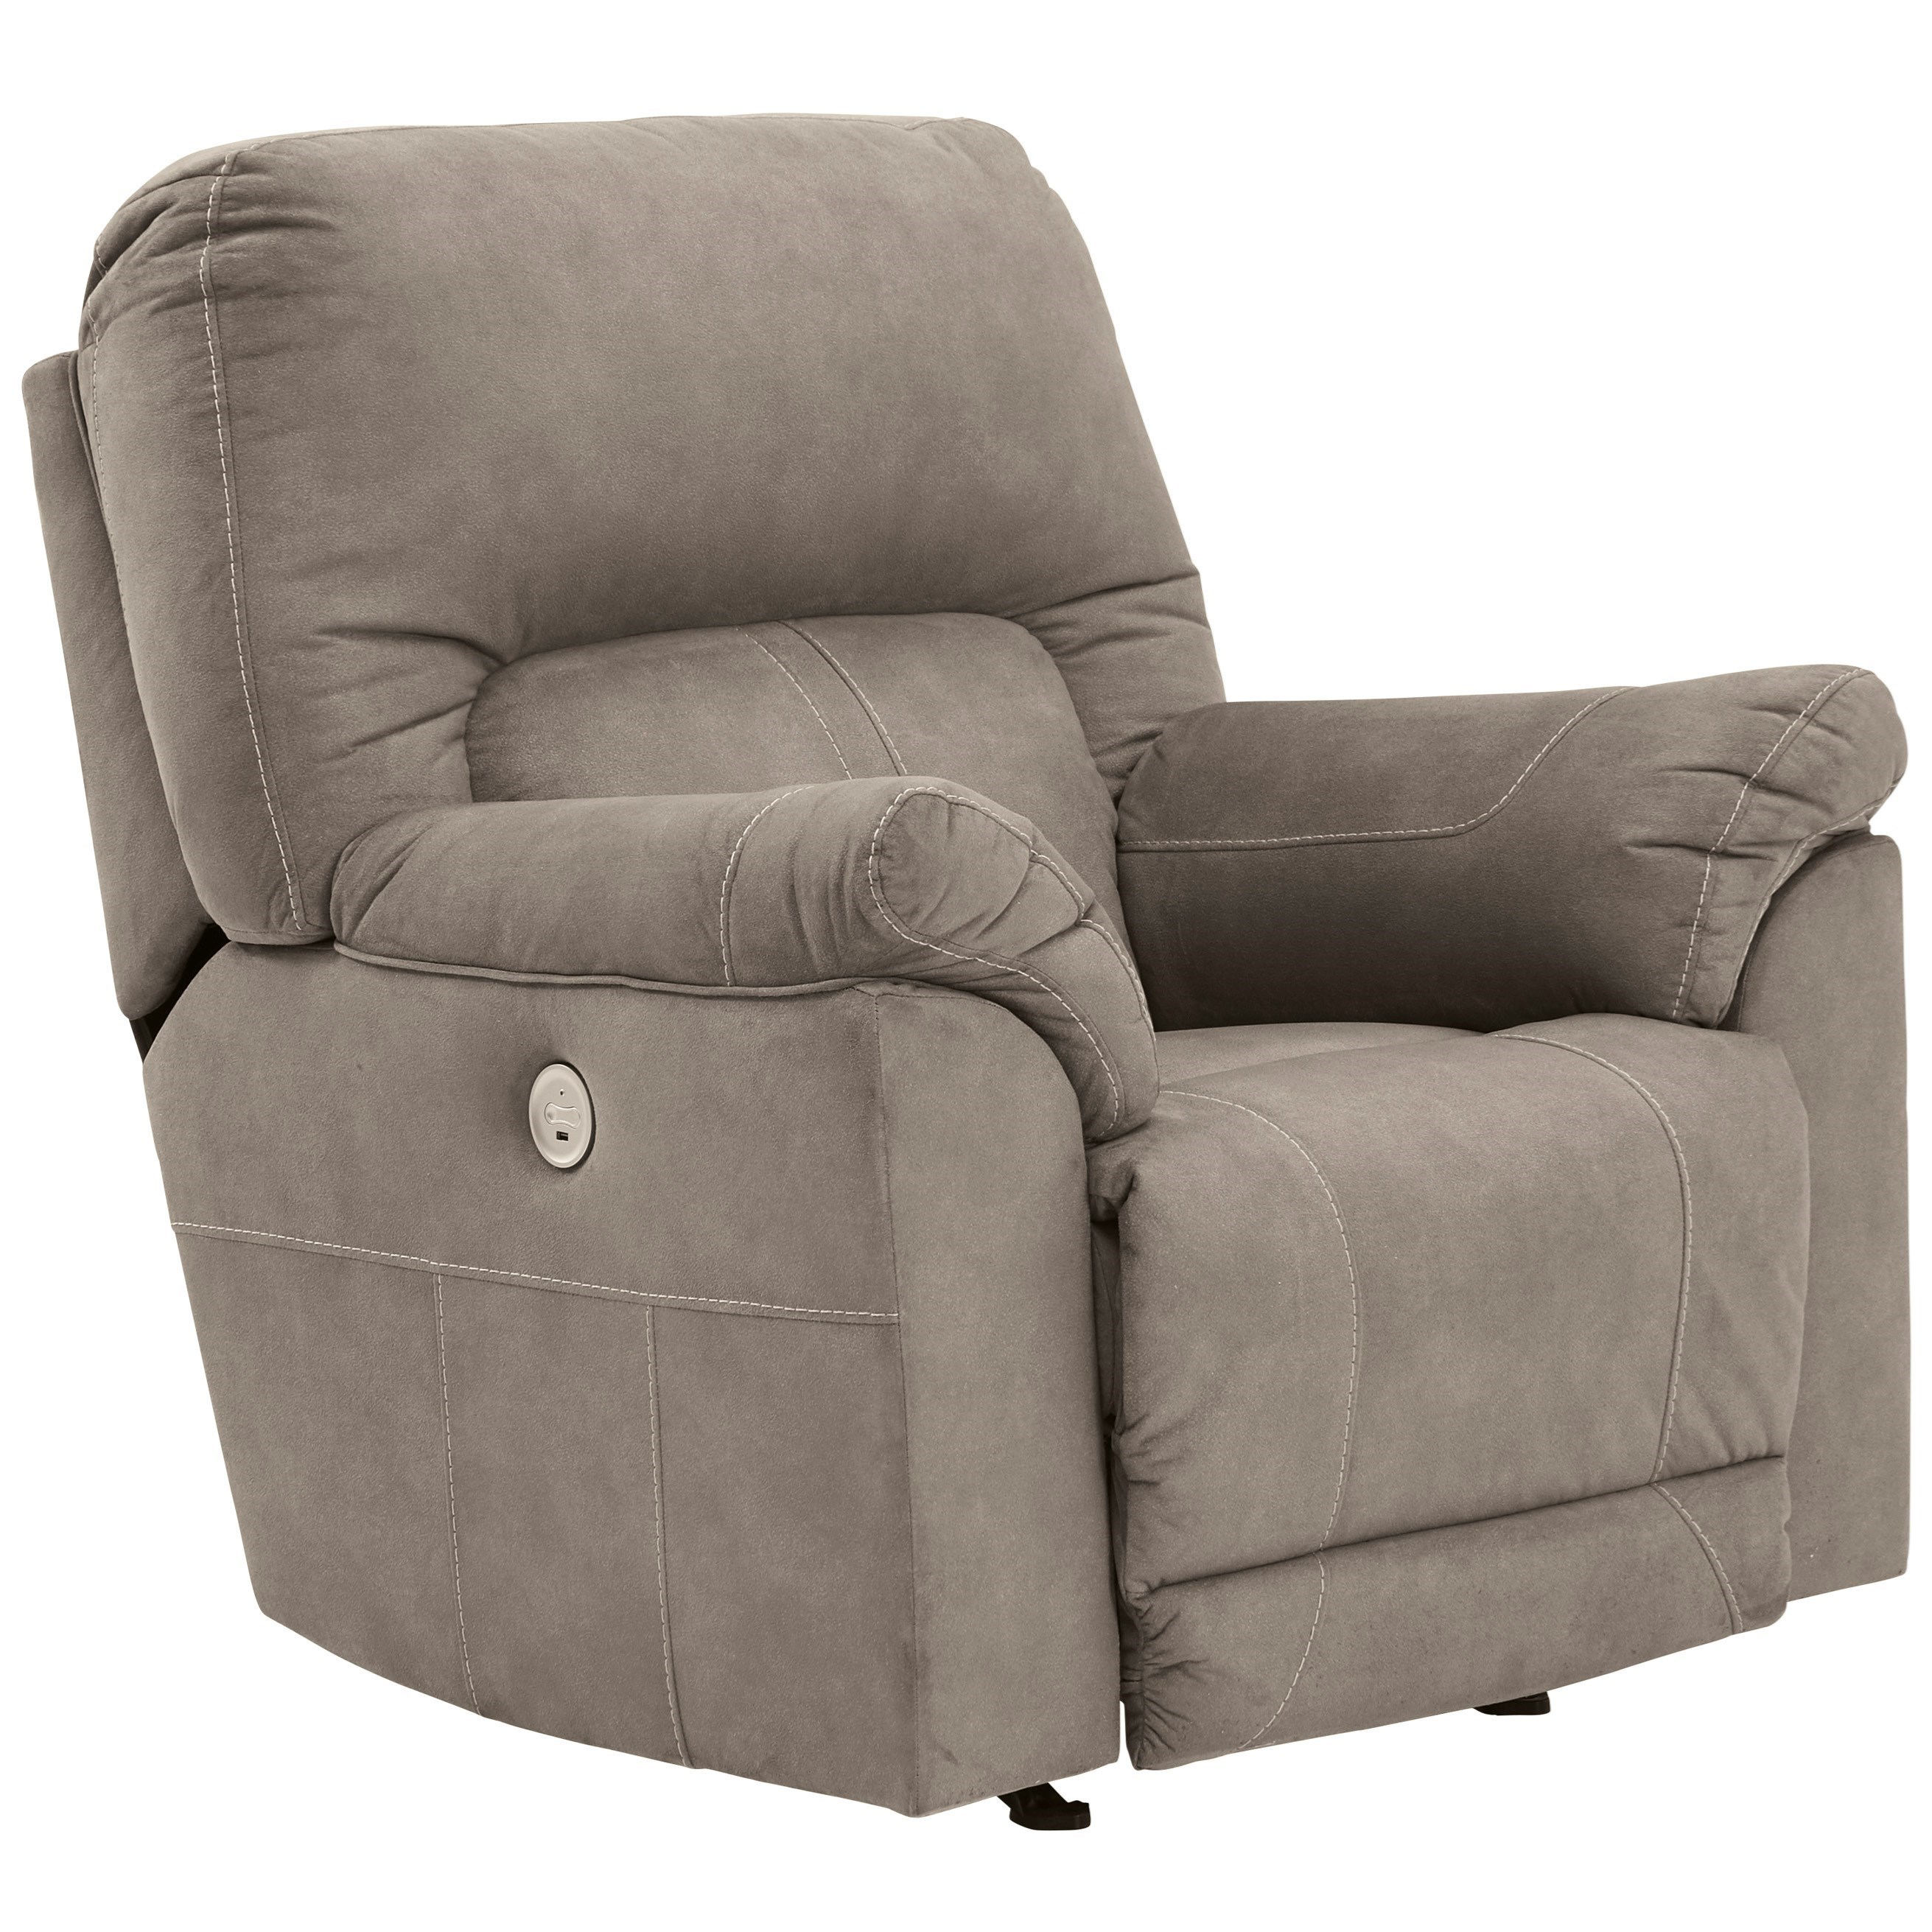 Cavalcade Power Rocker Recliner by Benchcraft at Miller Waldrop Furniture and Decor